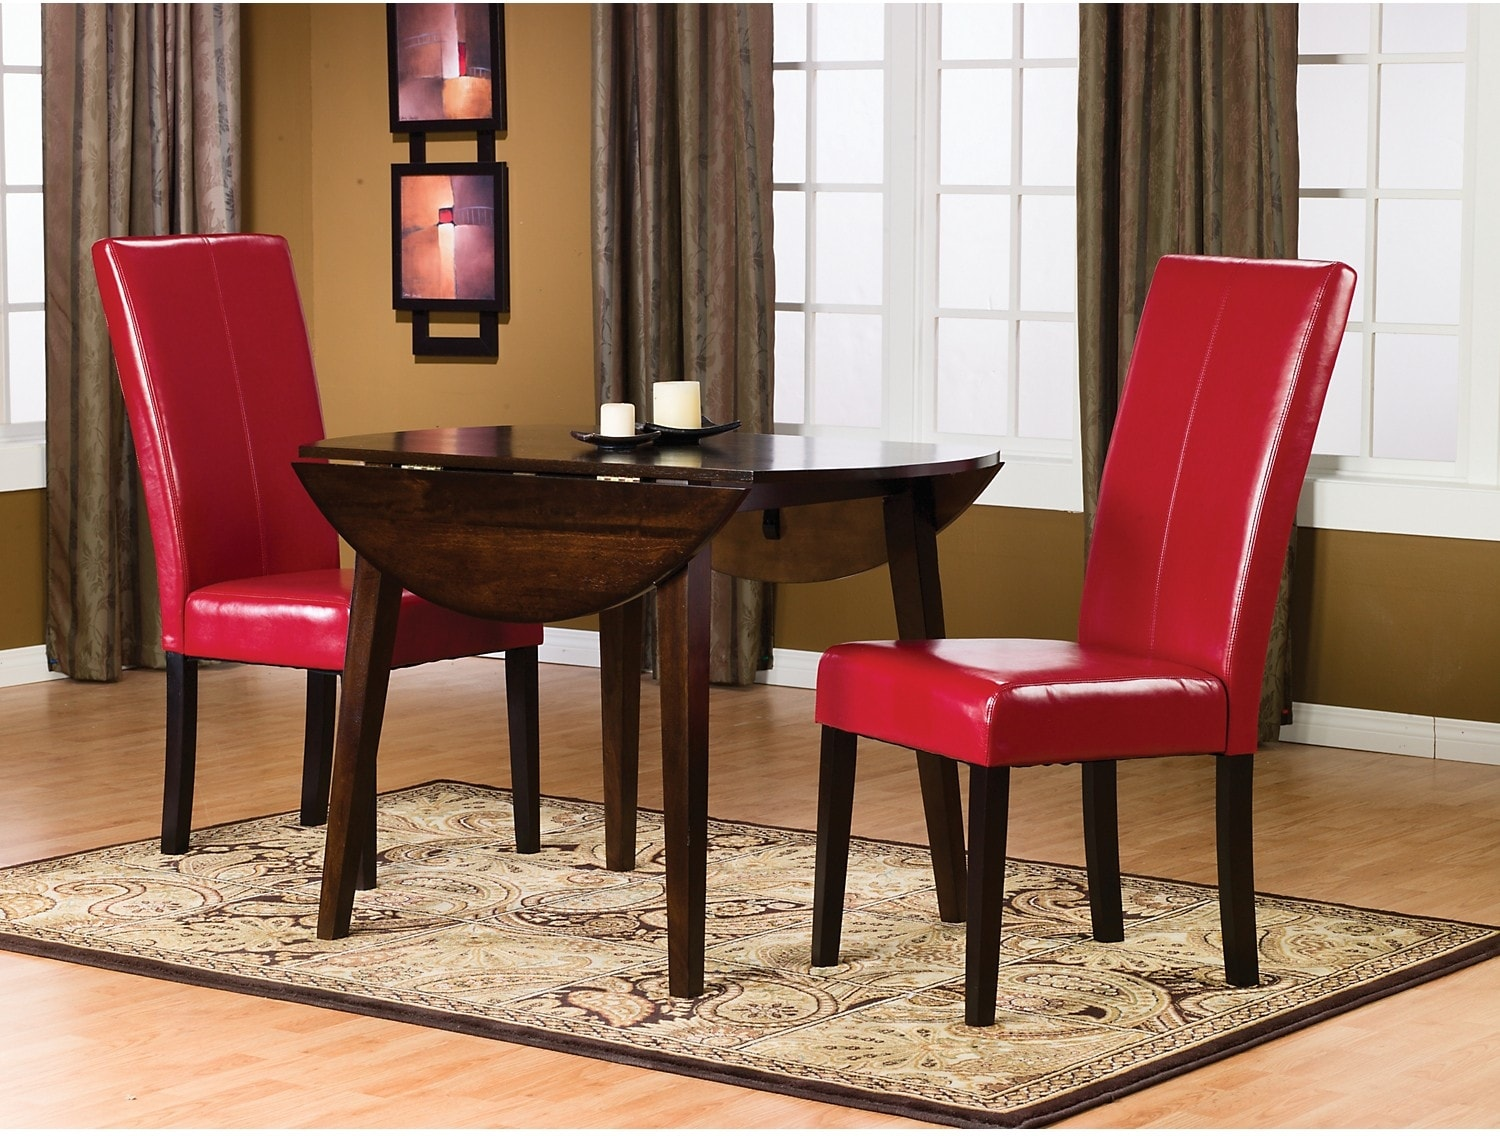 Dakota 3-Piece Round Table Dining Package w/ Red Chairs